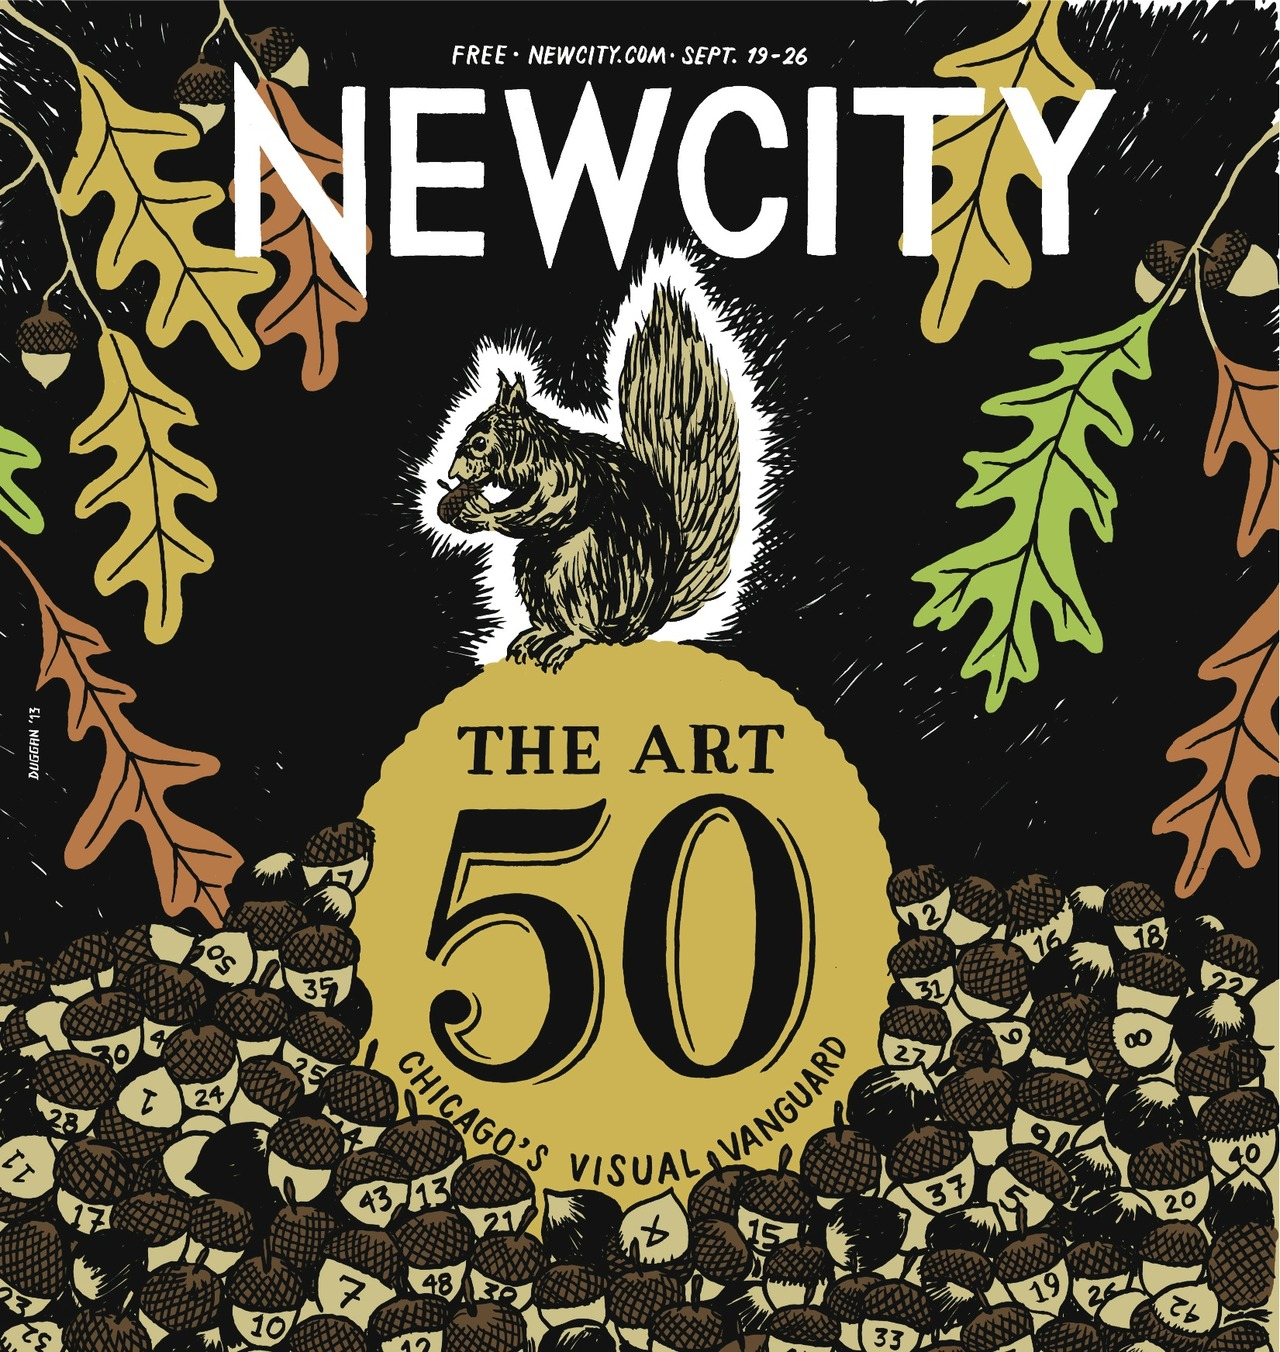 """Ryan Duggan's illustration for Newcity's """"The Art 50"""" issue. Find it here. Come see more of Ryan's work this weekend at our booth in Fountain Art Fair!"""